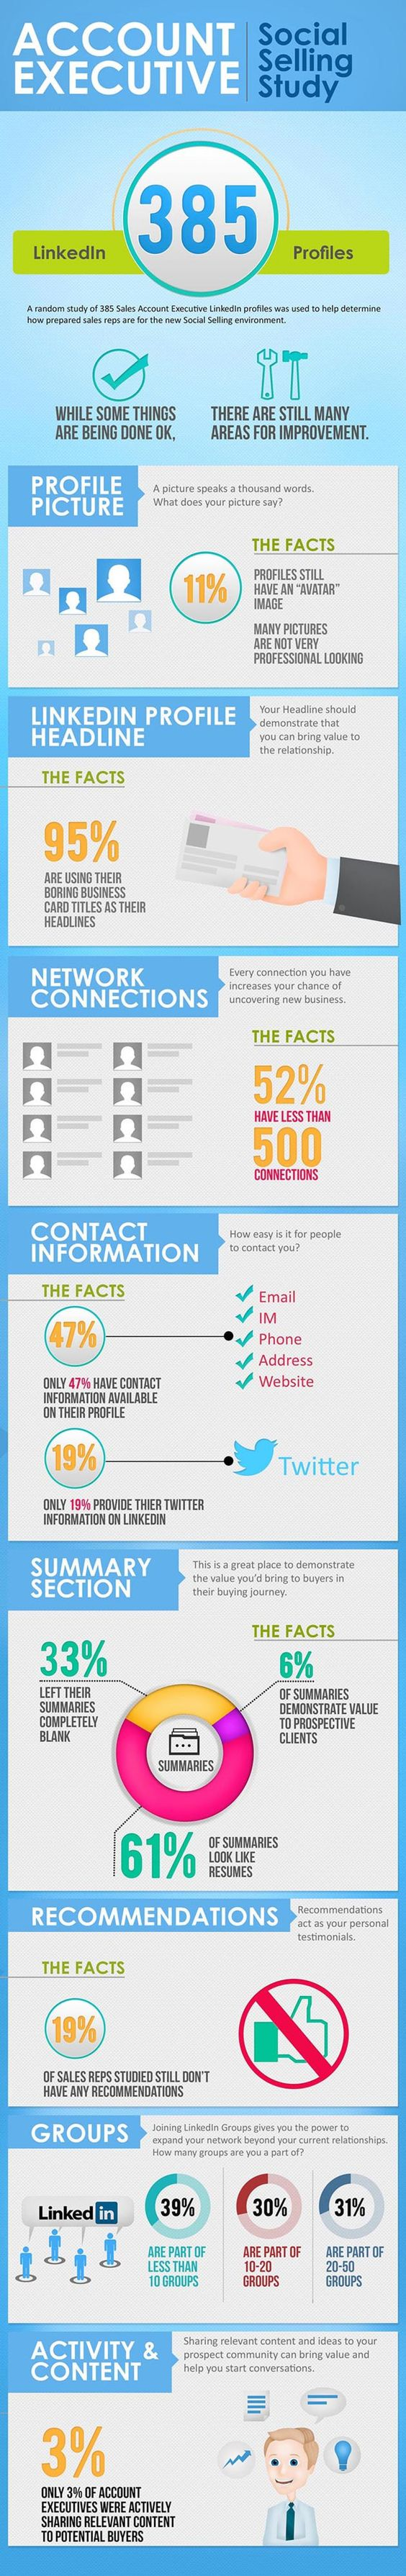 Effectively use linkedin Profile -This Infographic will demonstrate how an account executive effectively use and update his profile to get better result... -shared by mohitlakhmani | published Mar 04, 2014